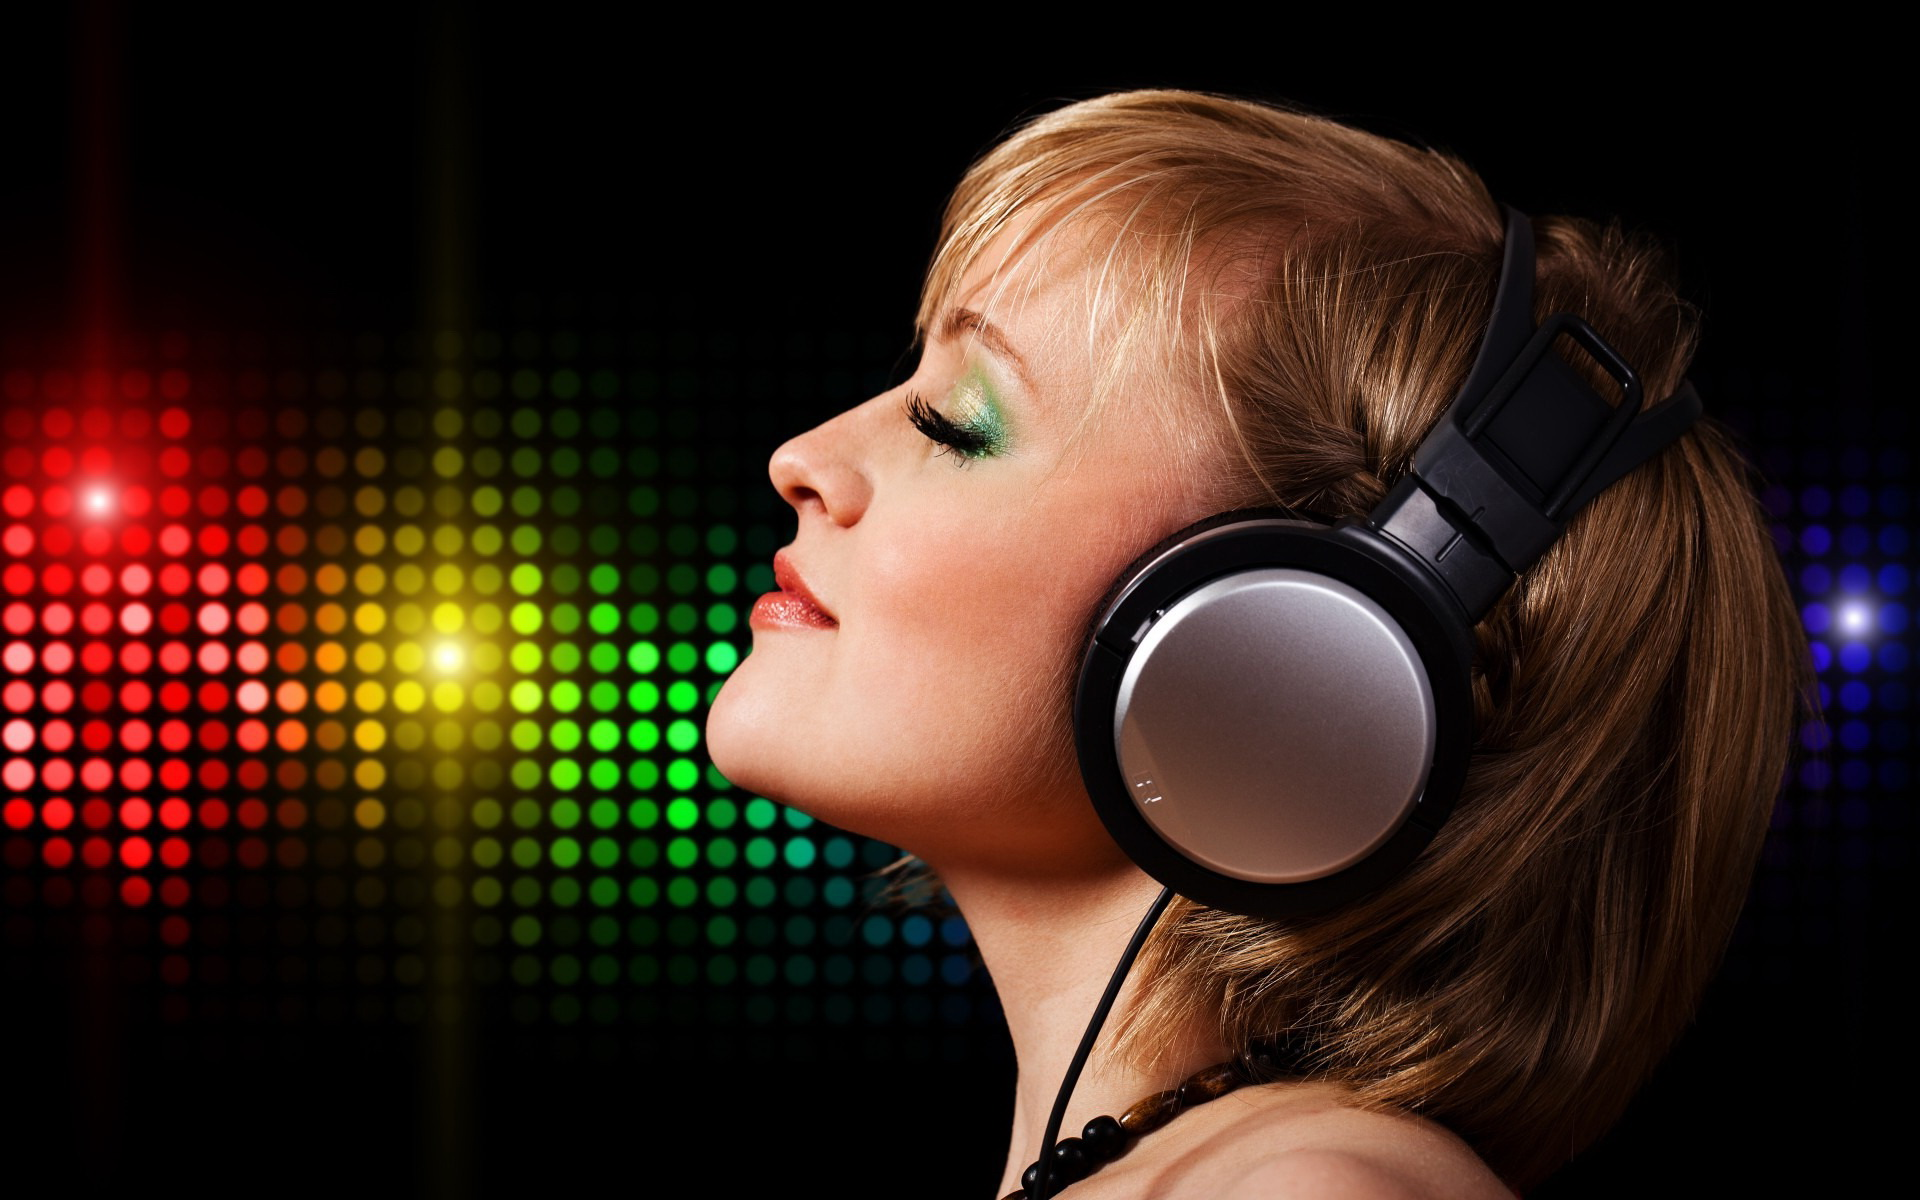 Description: Music Girl Wallpaper HD is a hi res Wallpaper for pc ...: wallpup.com/wallpaper/music-girl-wallpaper-hd.html